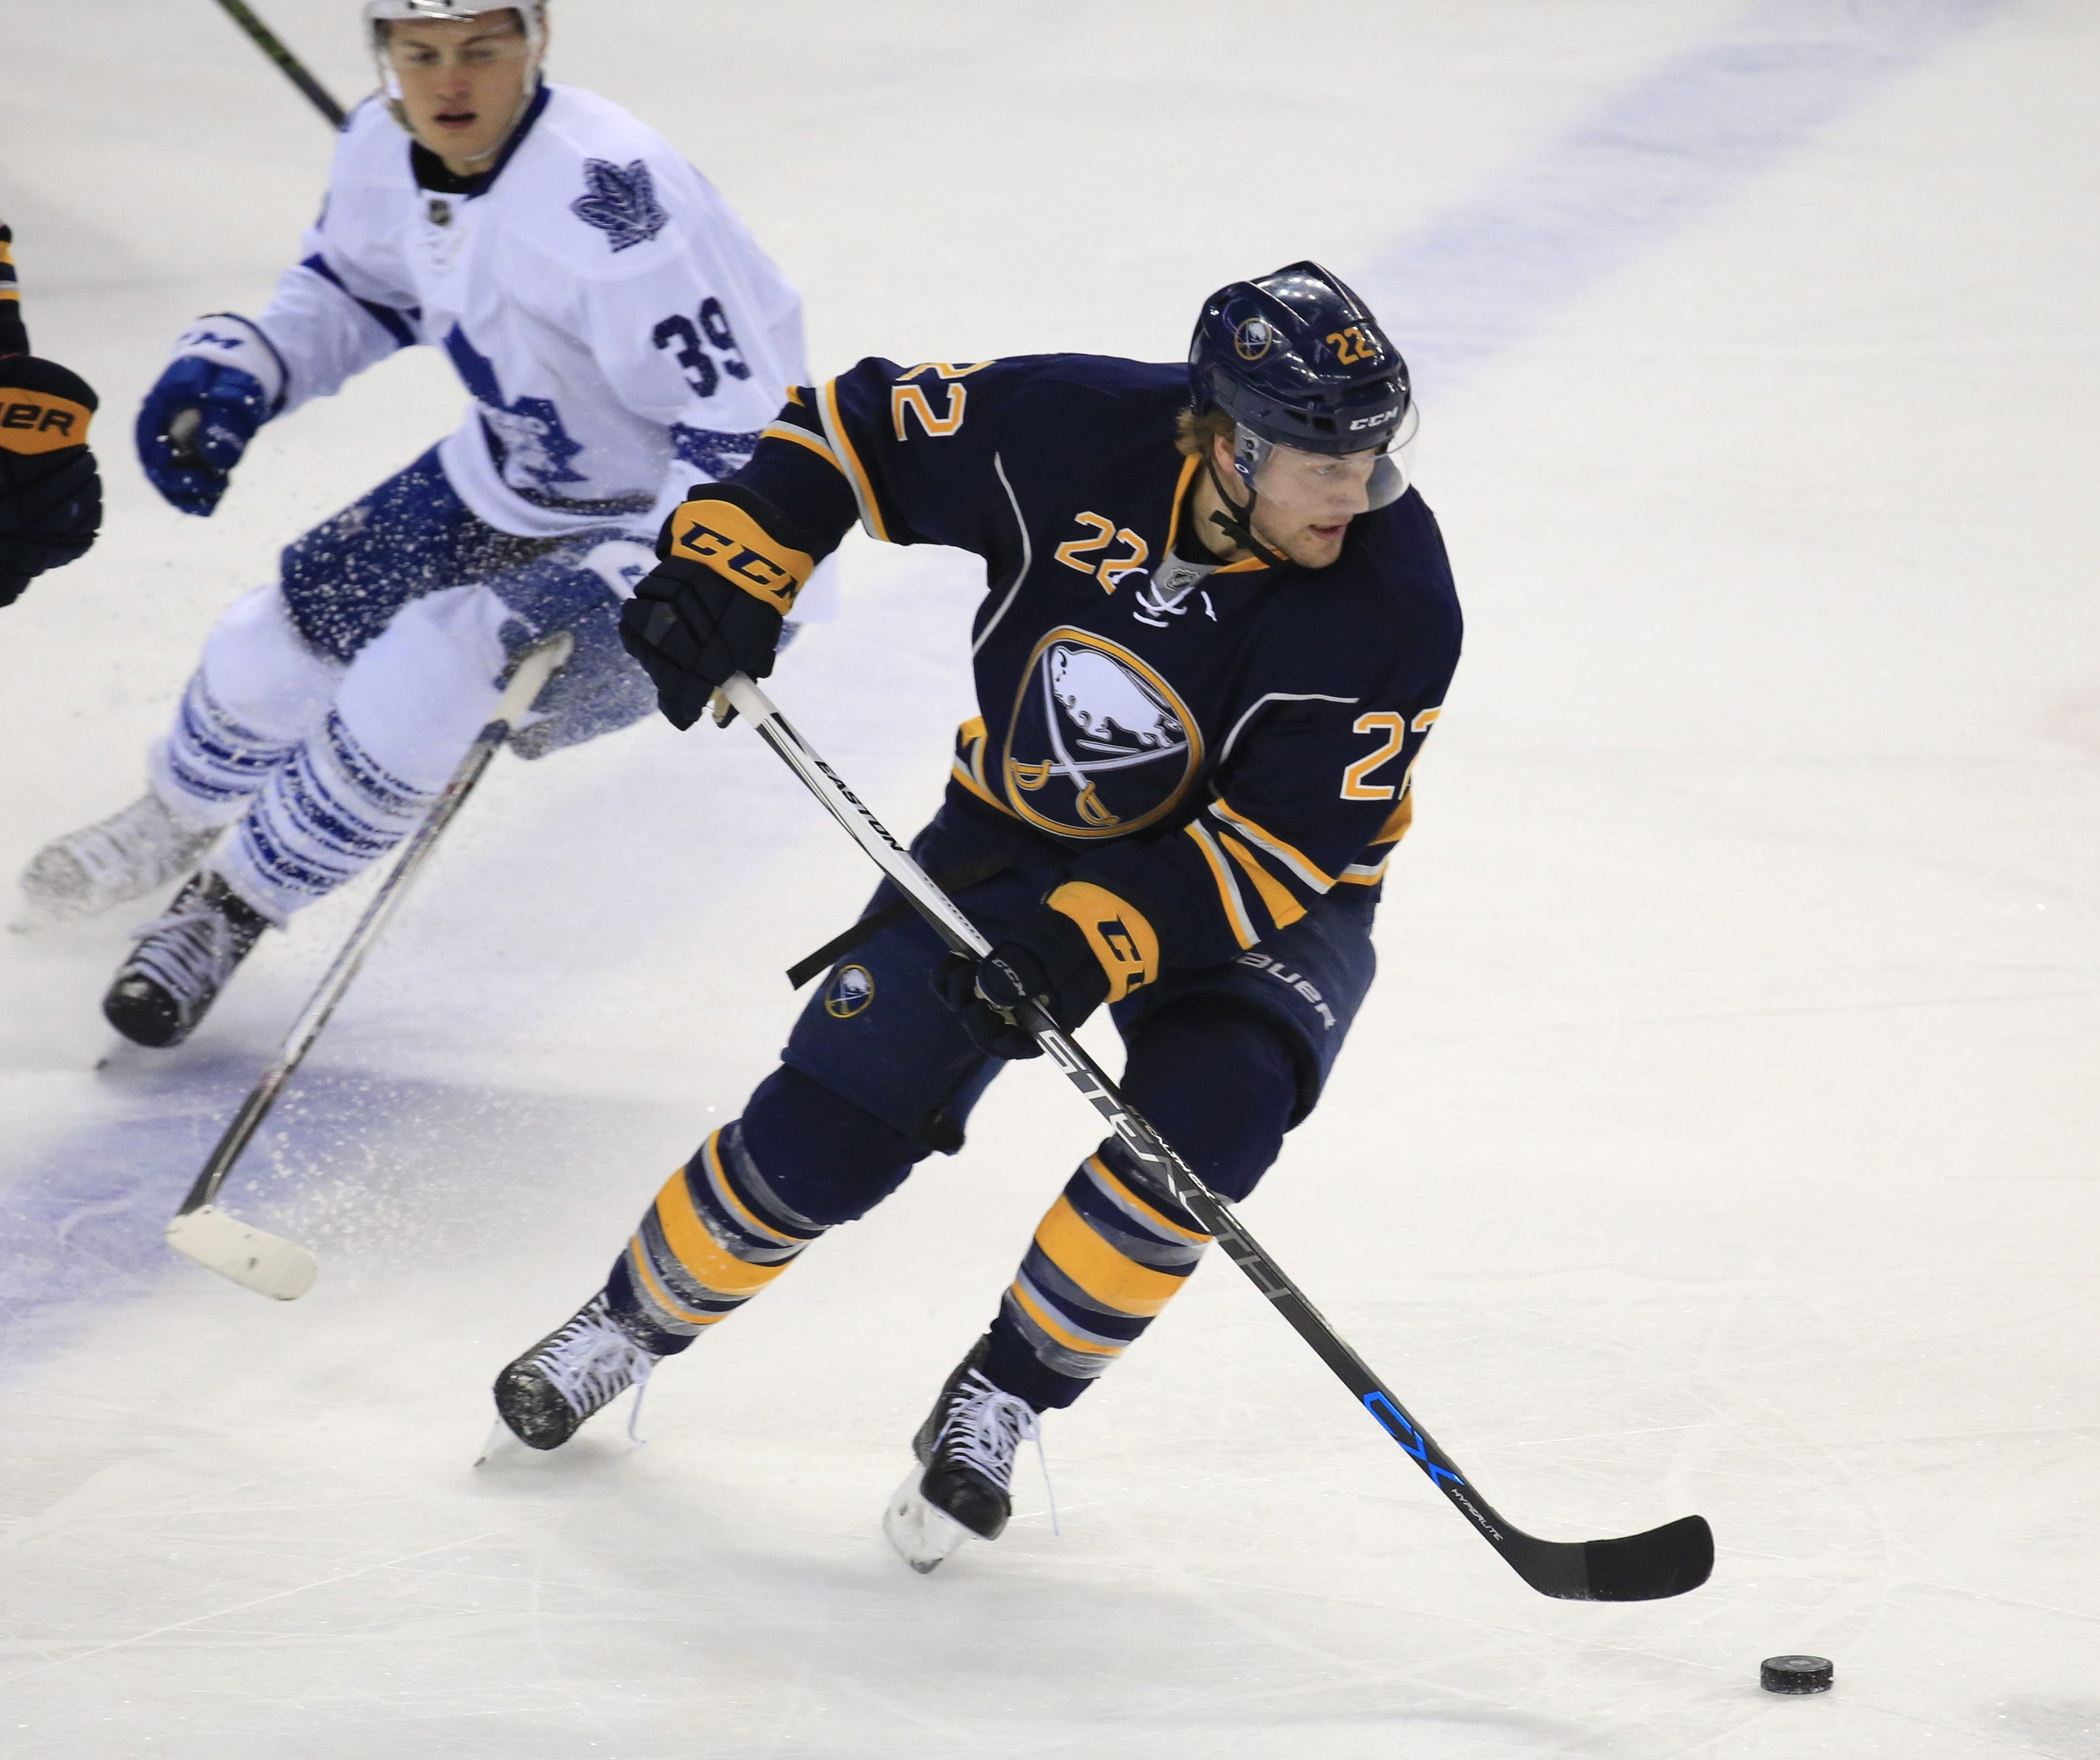 Johan Larsson moves the puck against the Toronto Maple Leafs in the first period Thursday. Larsson scored twice and has seven goals in the last 17 games.